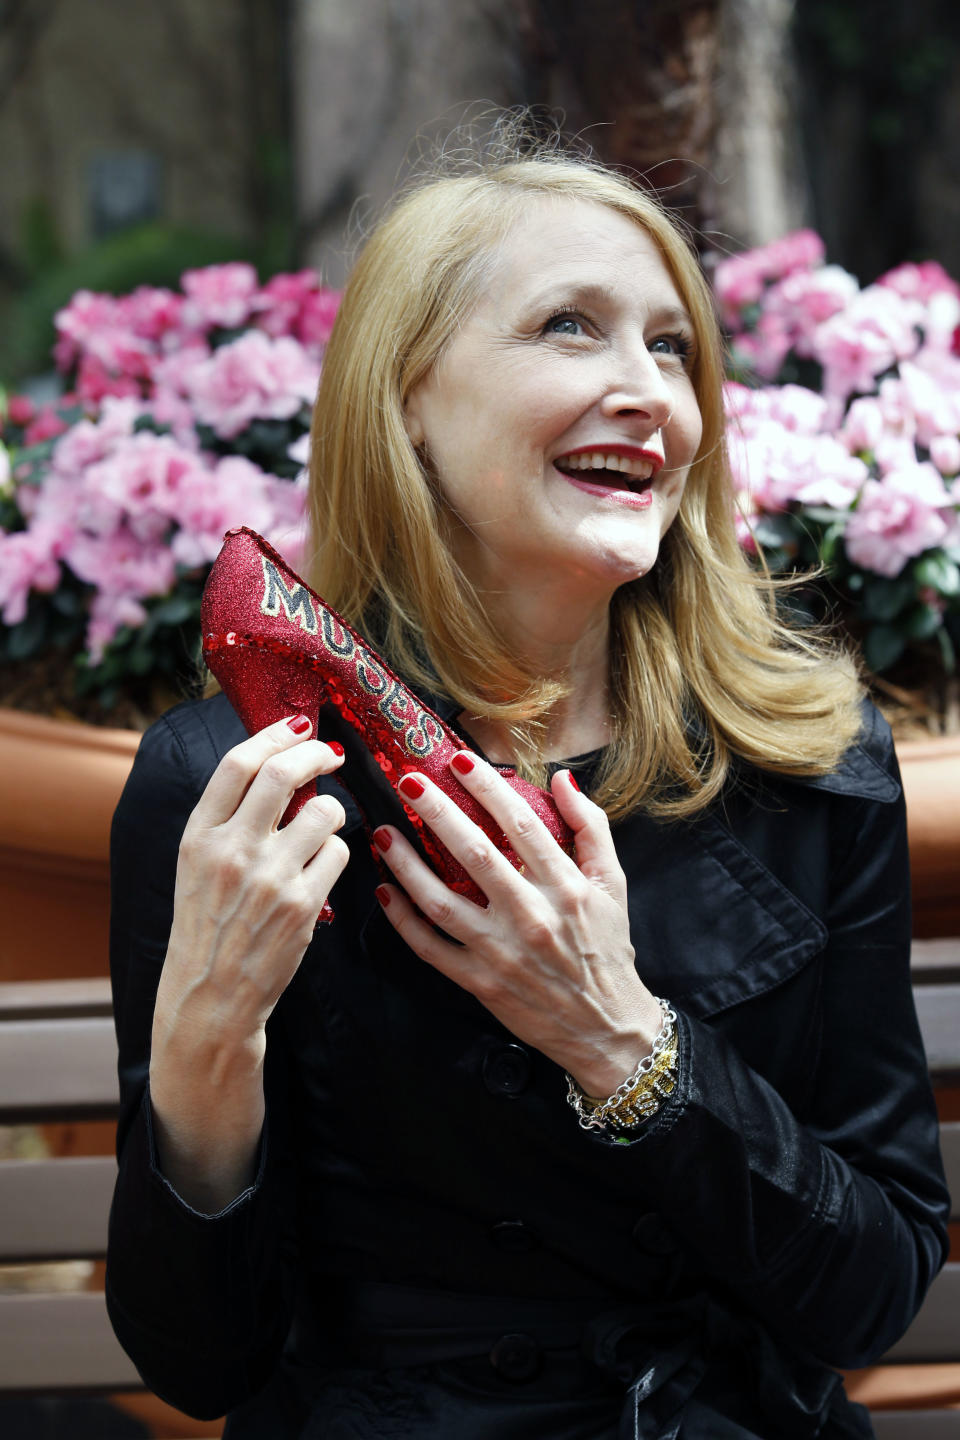 Actress Patricia Clarkson holds a decorated shoe which is the symbol of the Mardi Gras parade Muses in New Orleans,  Wednesday, Feb. 15, 2012. Clarkson will preside over the all-women Mardi Gras Krewe of Muses parade. The parade will march through the streets of the city Thursday night.   (AP Photo/Bill Haber)